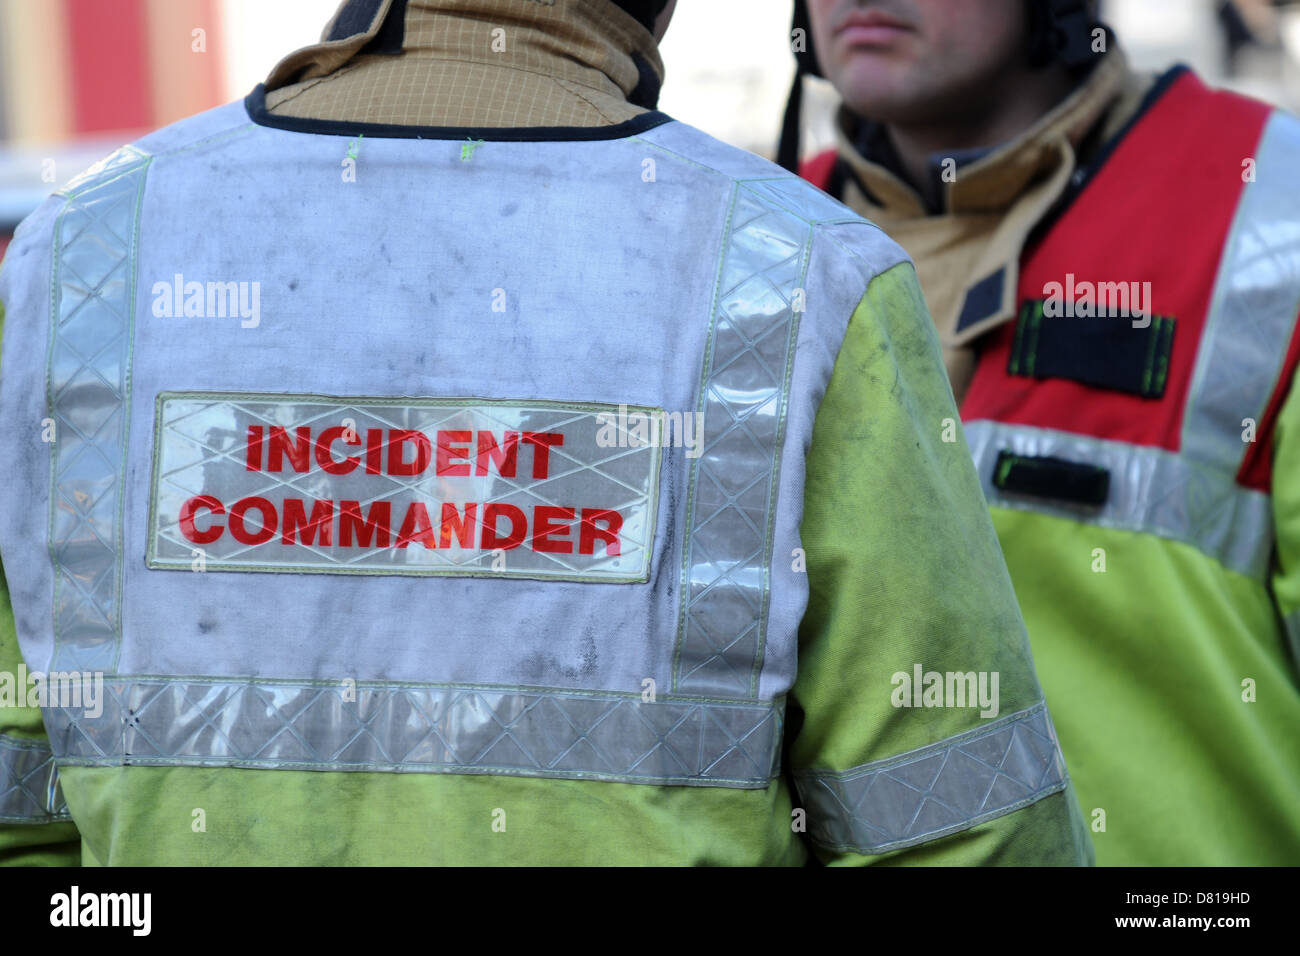 Incident commander in the fire service. - Stock Image